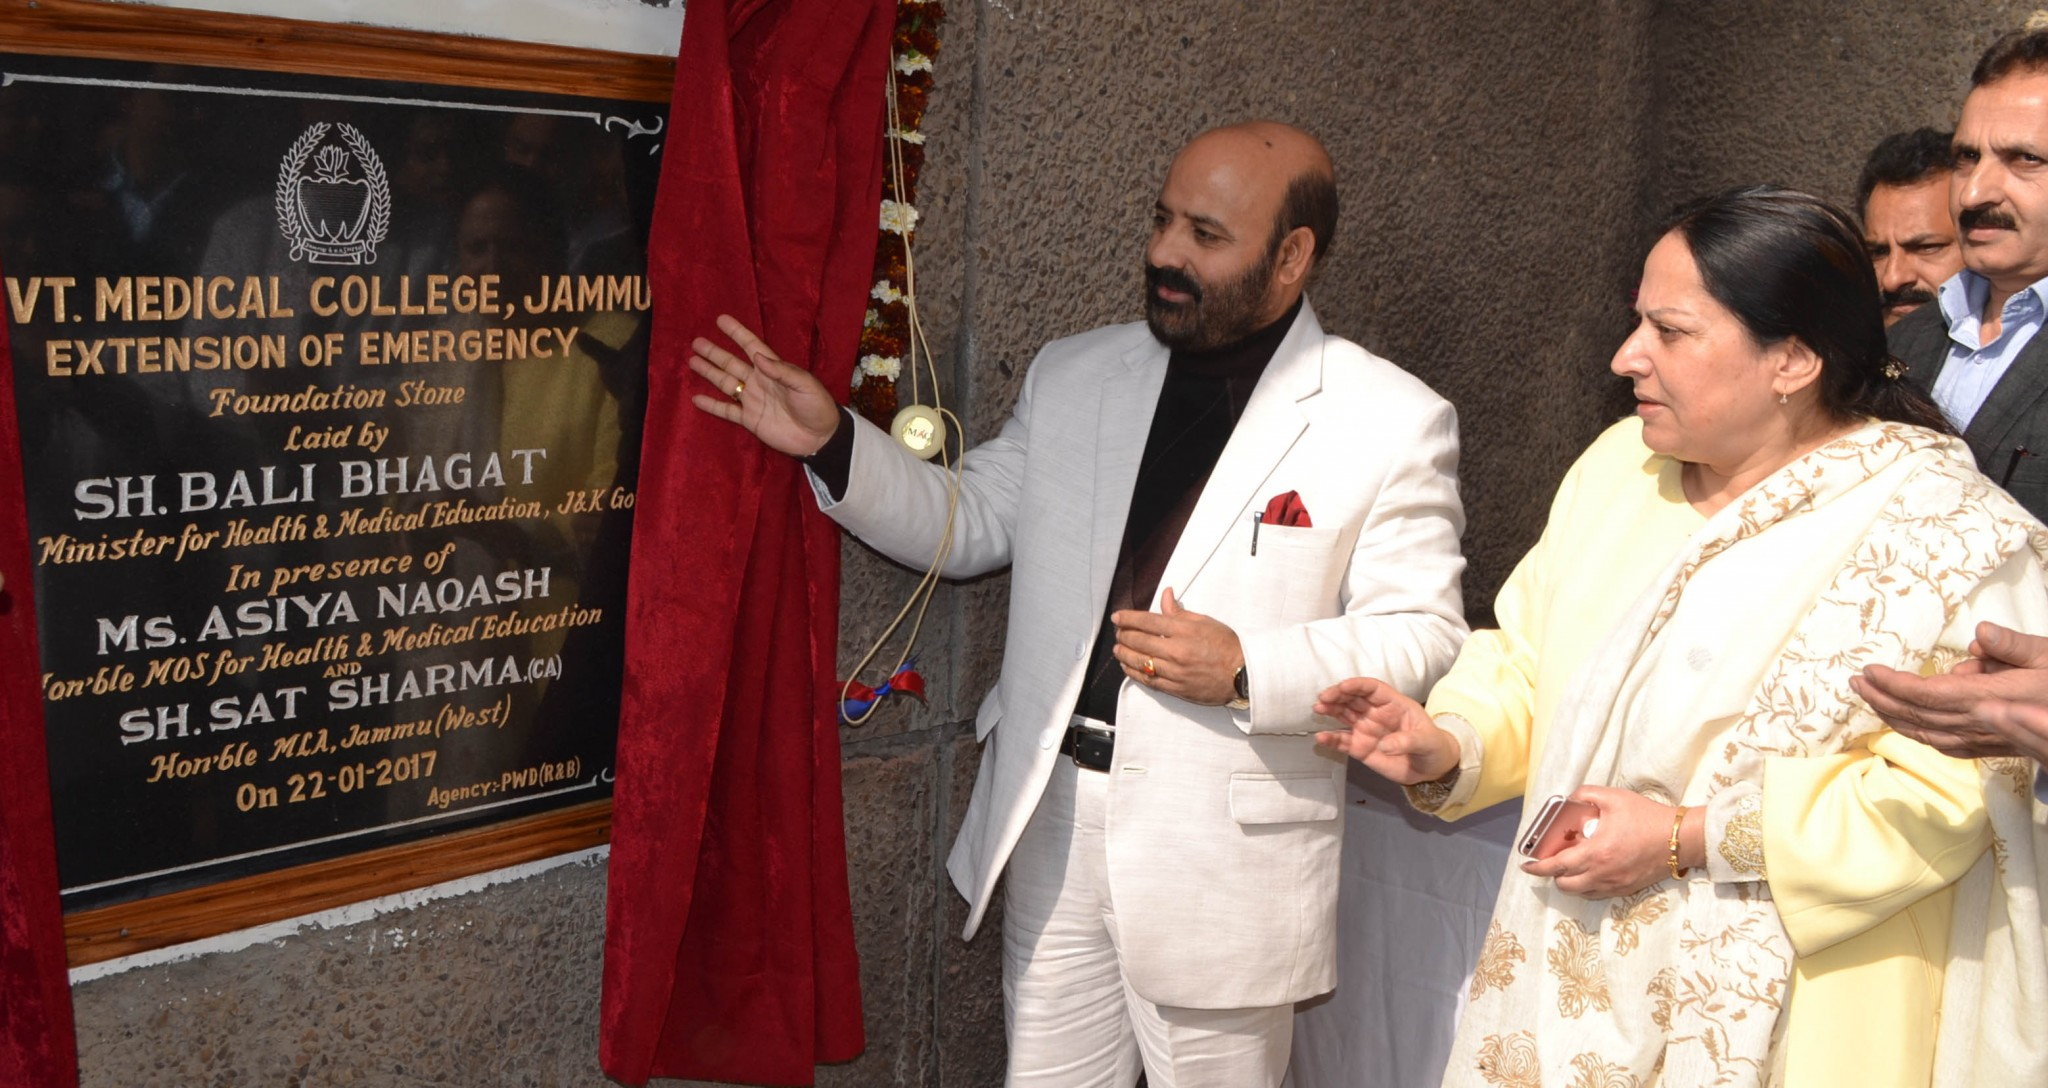 Minister for Health and Medical Education Bali Bhagat